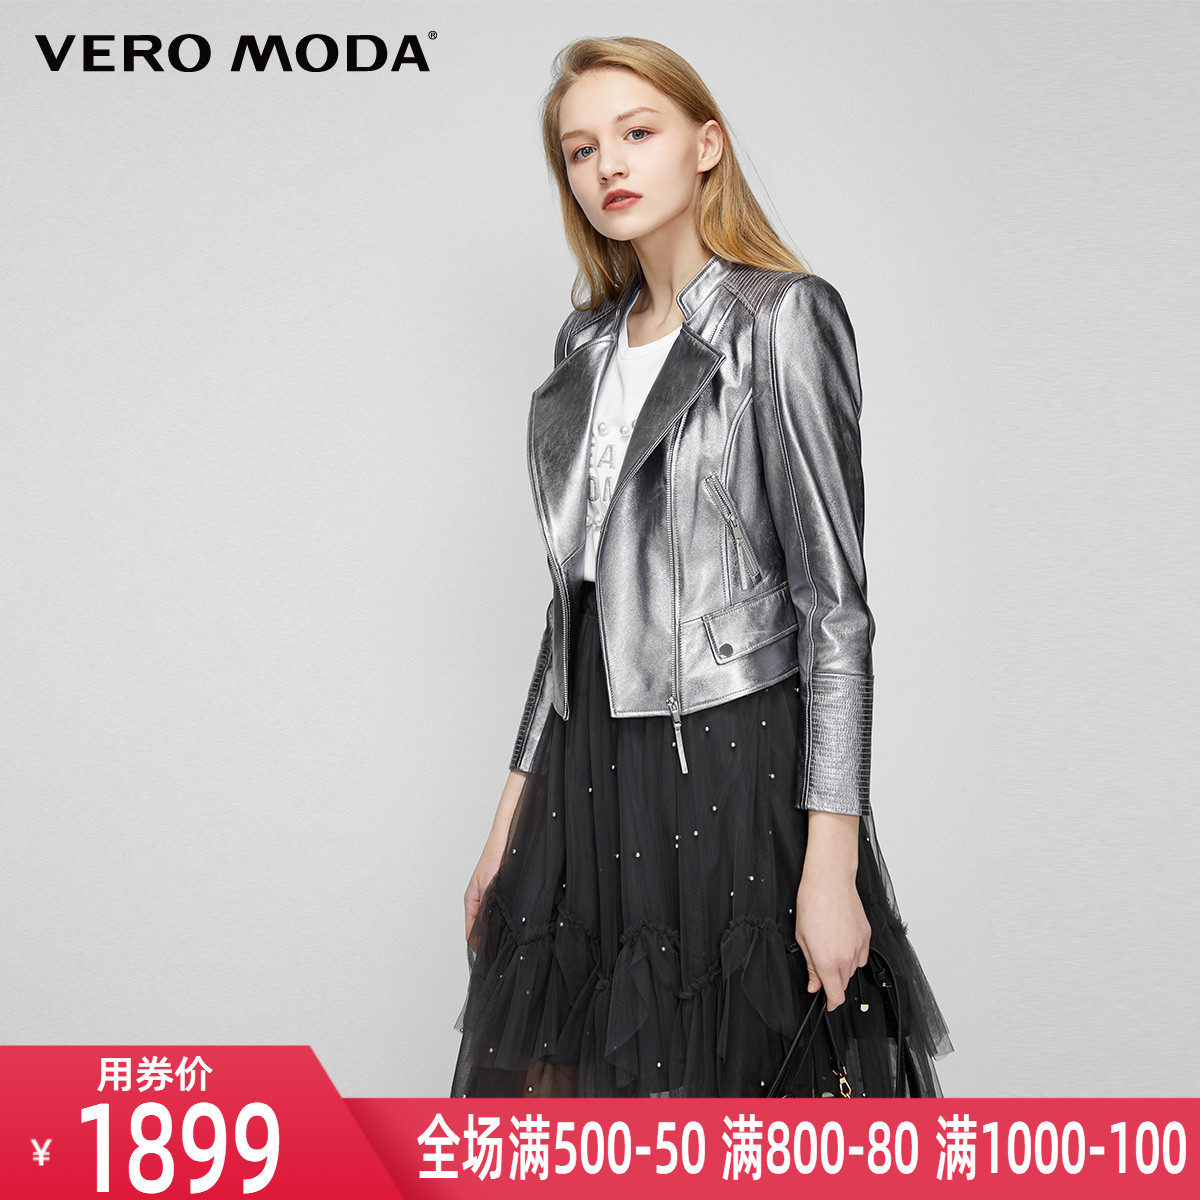 Vero moda2020 spring and summer new ins style futuristic locomotive jacket leather women 320110505